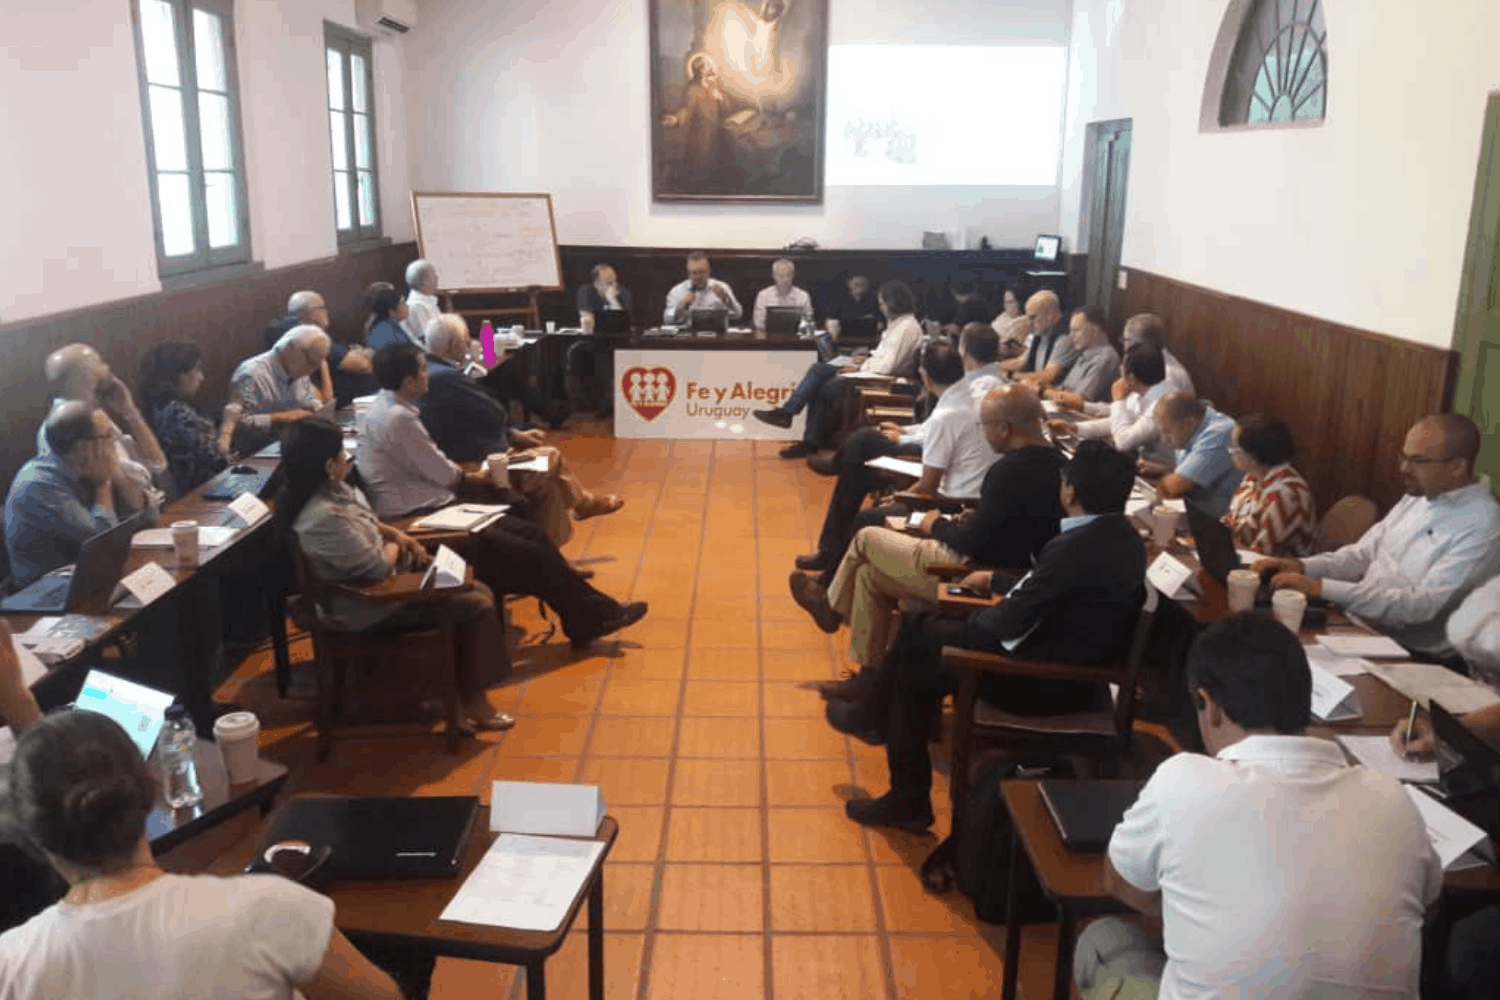 34th Annual Assembly of the International Federation of Fe y Alegría